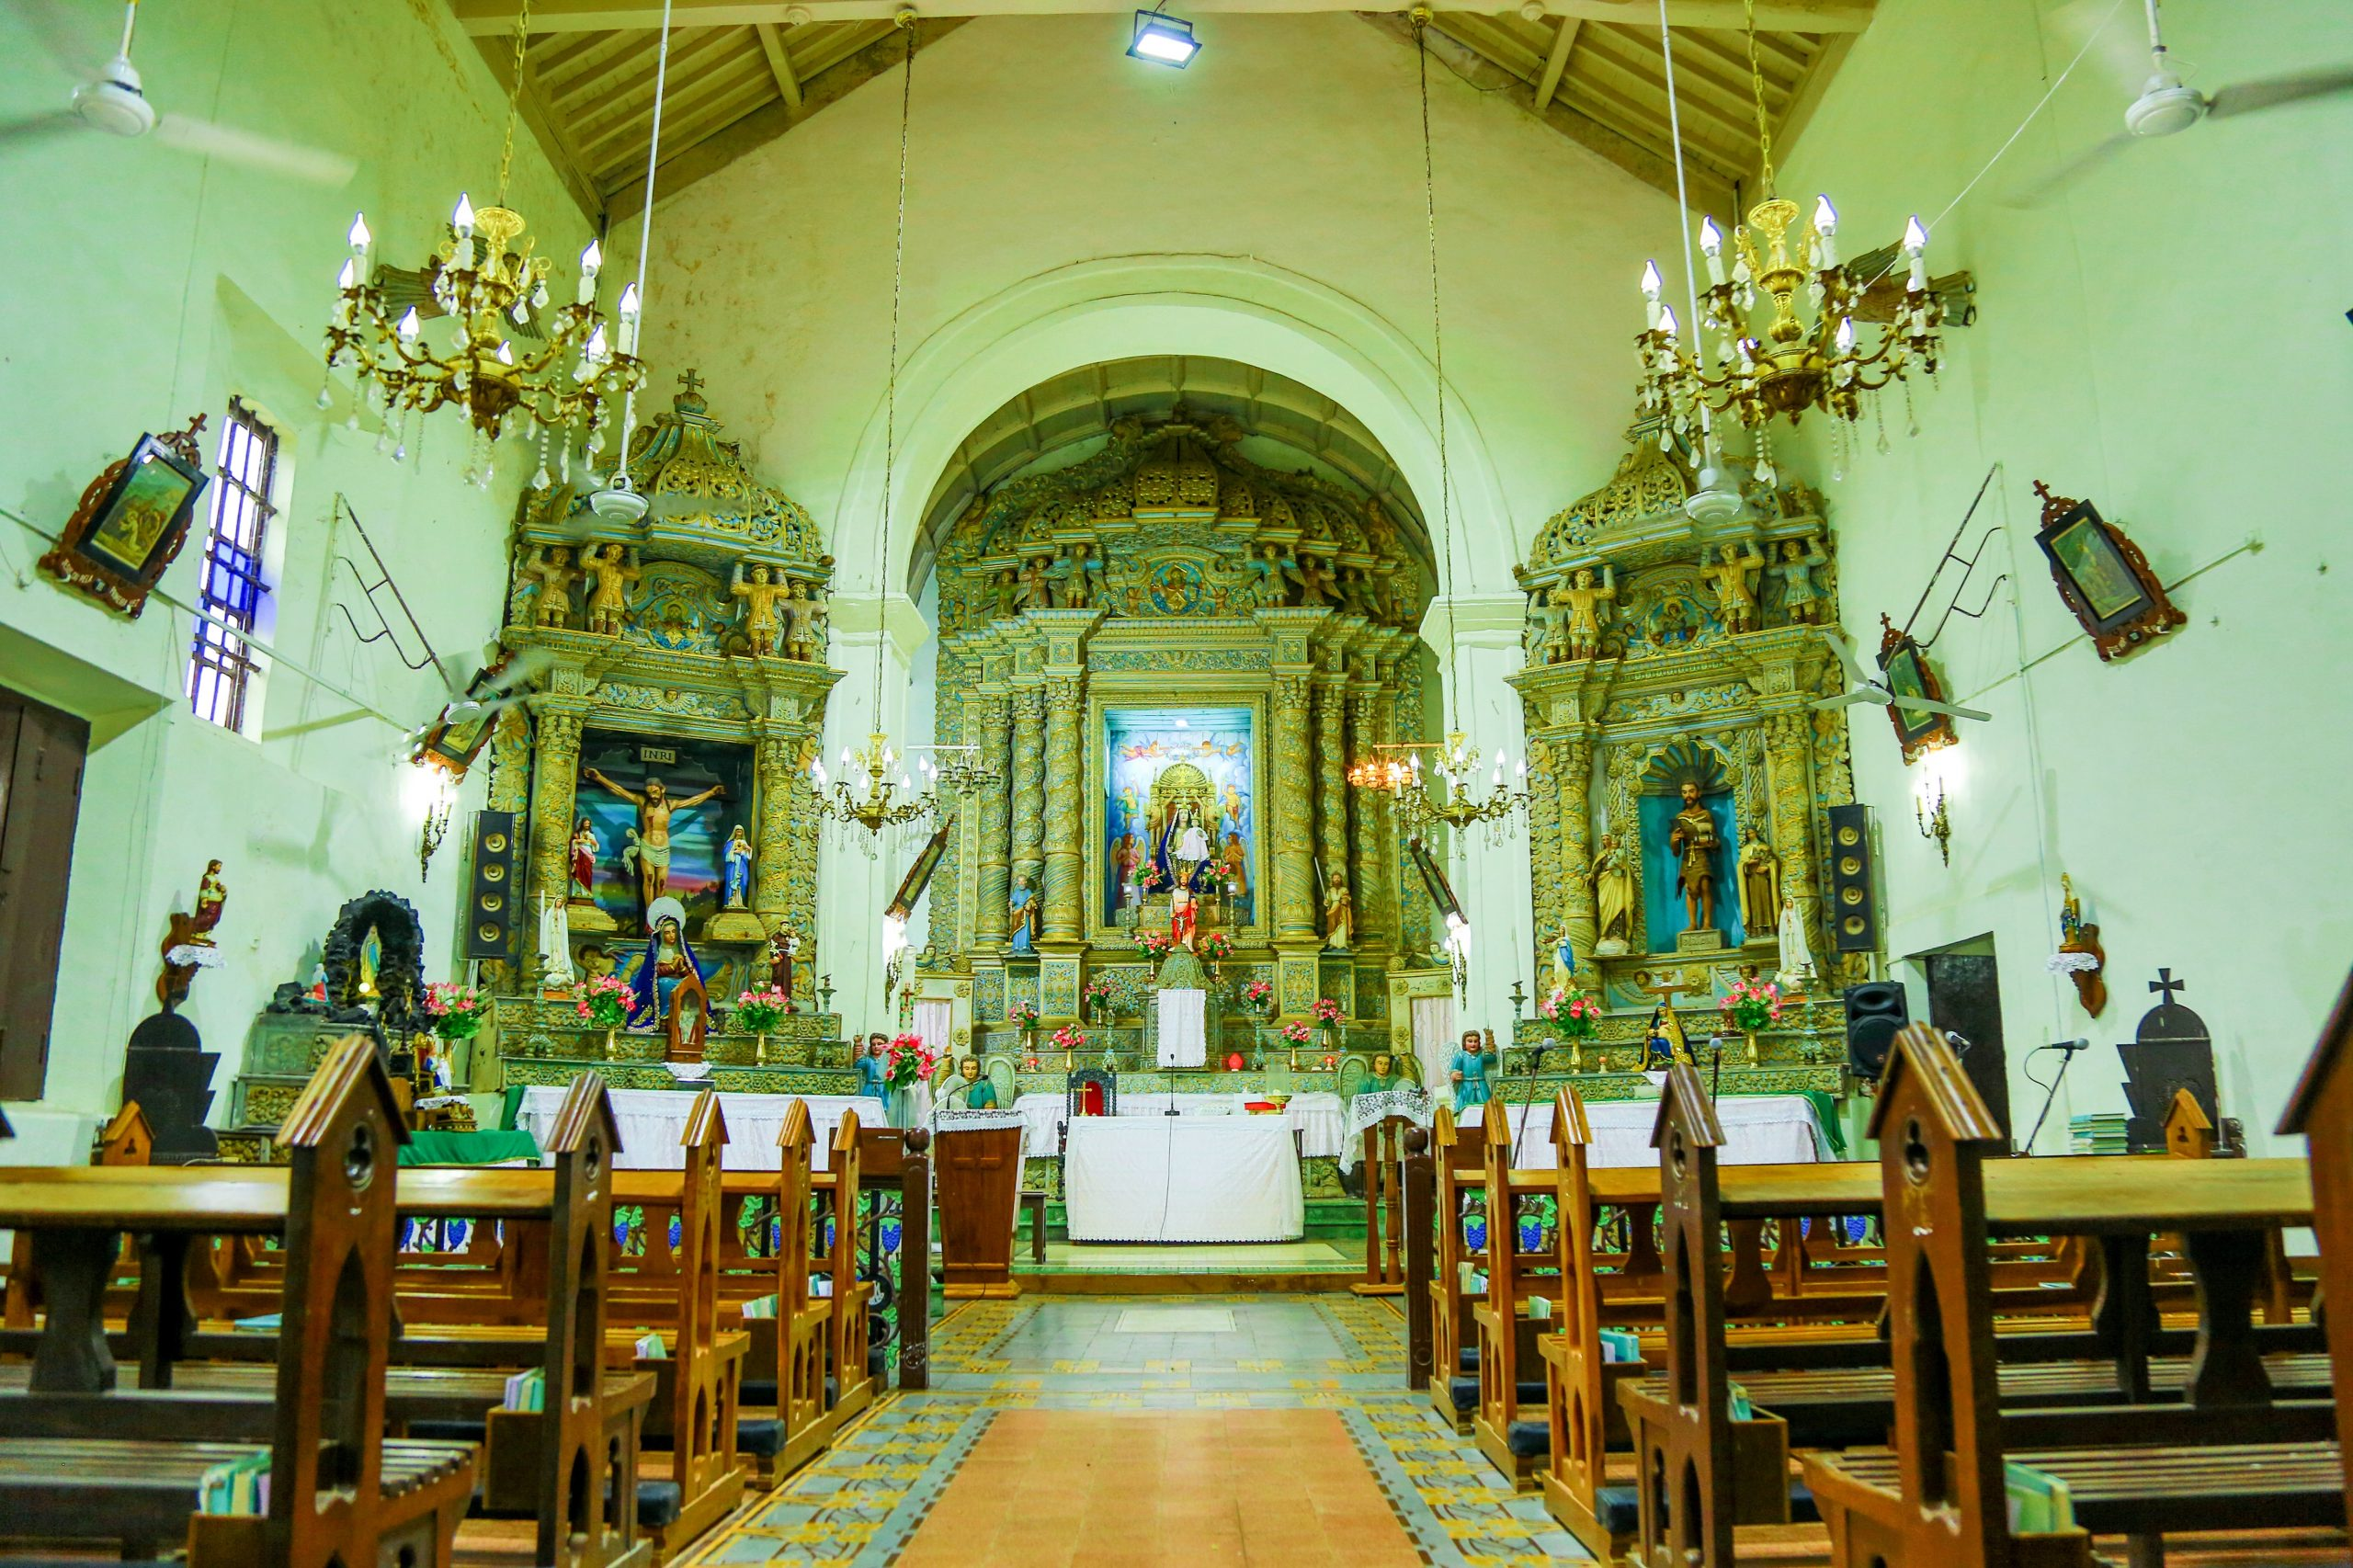 The Church of Our Lady of Remedios inside